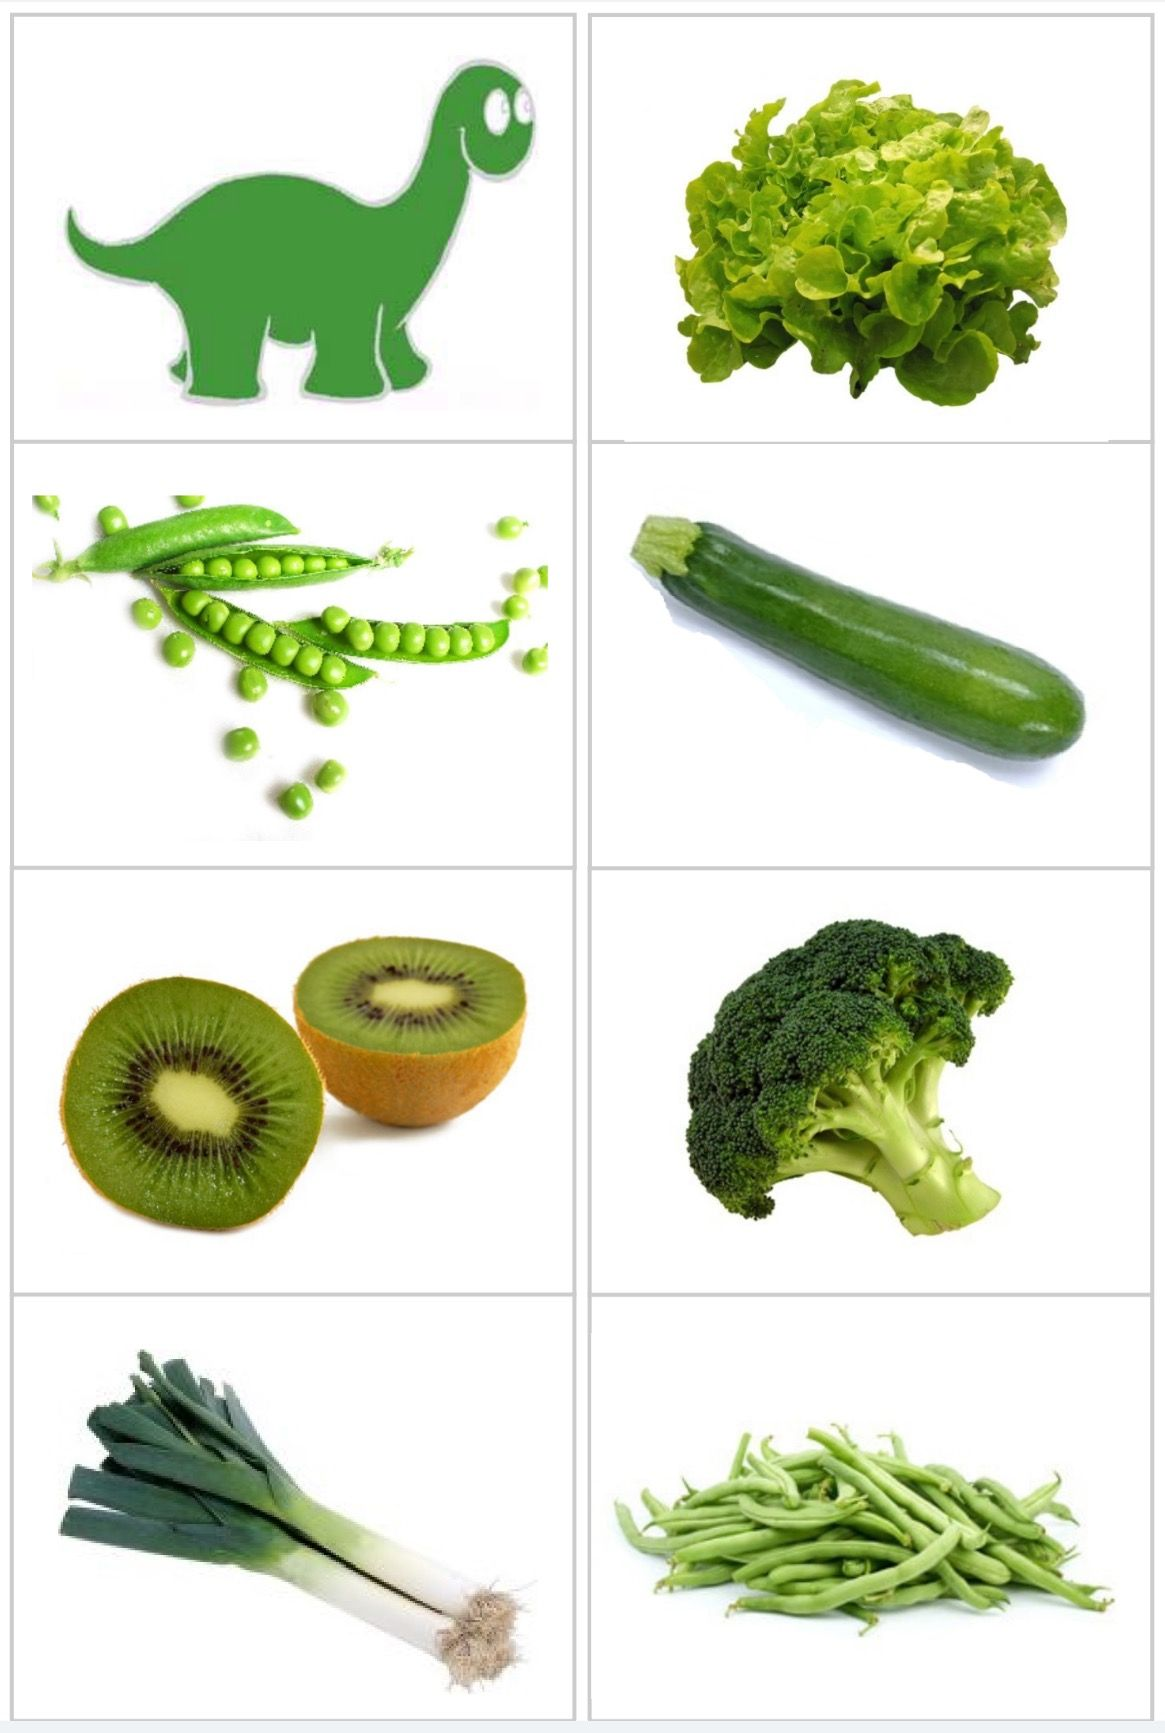 Pin by Louli Fisch on Pop   Pinterest   Sensory toys, Montessori and ...